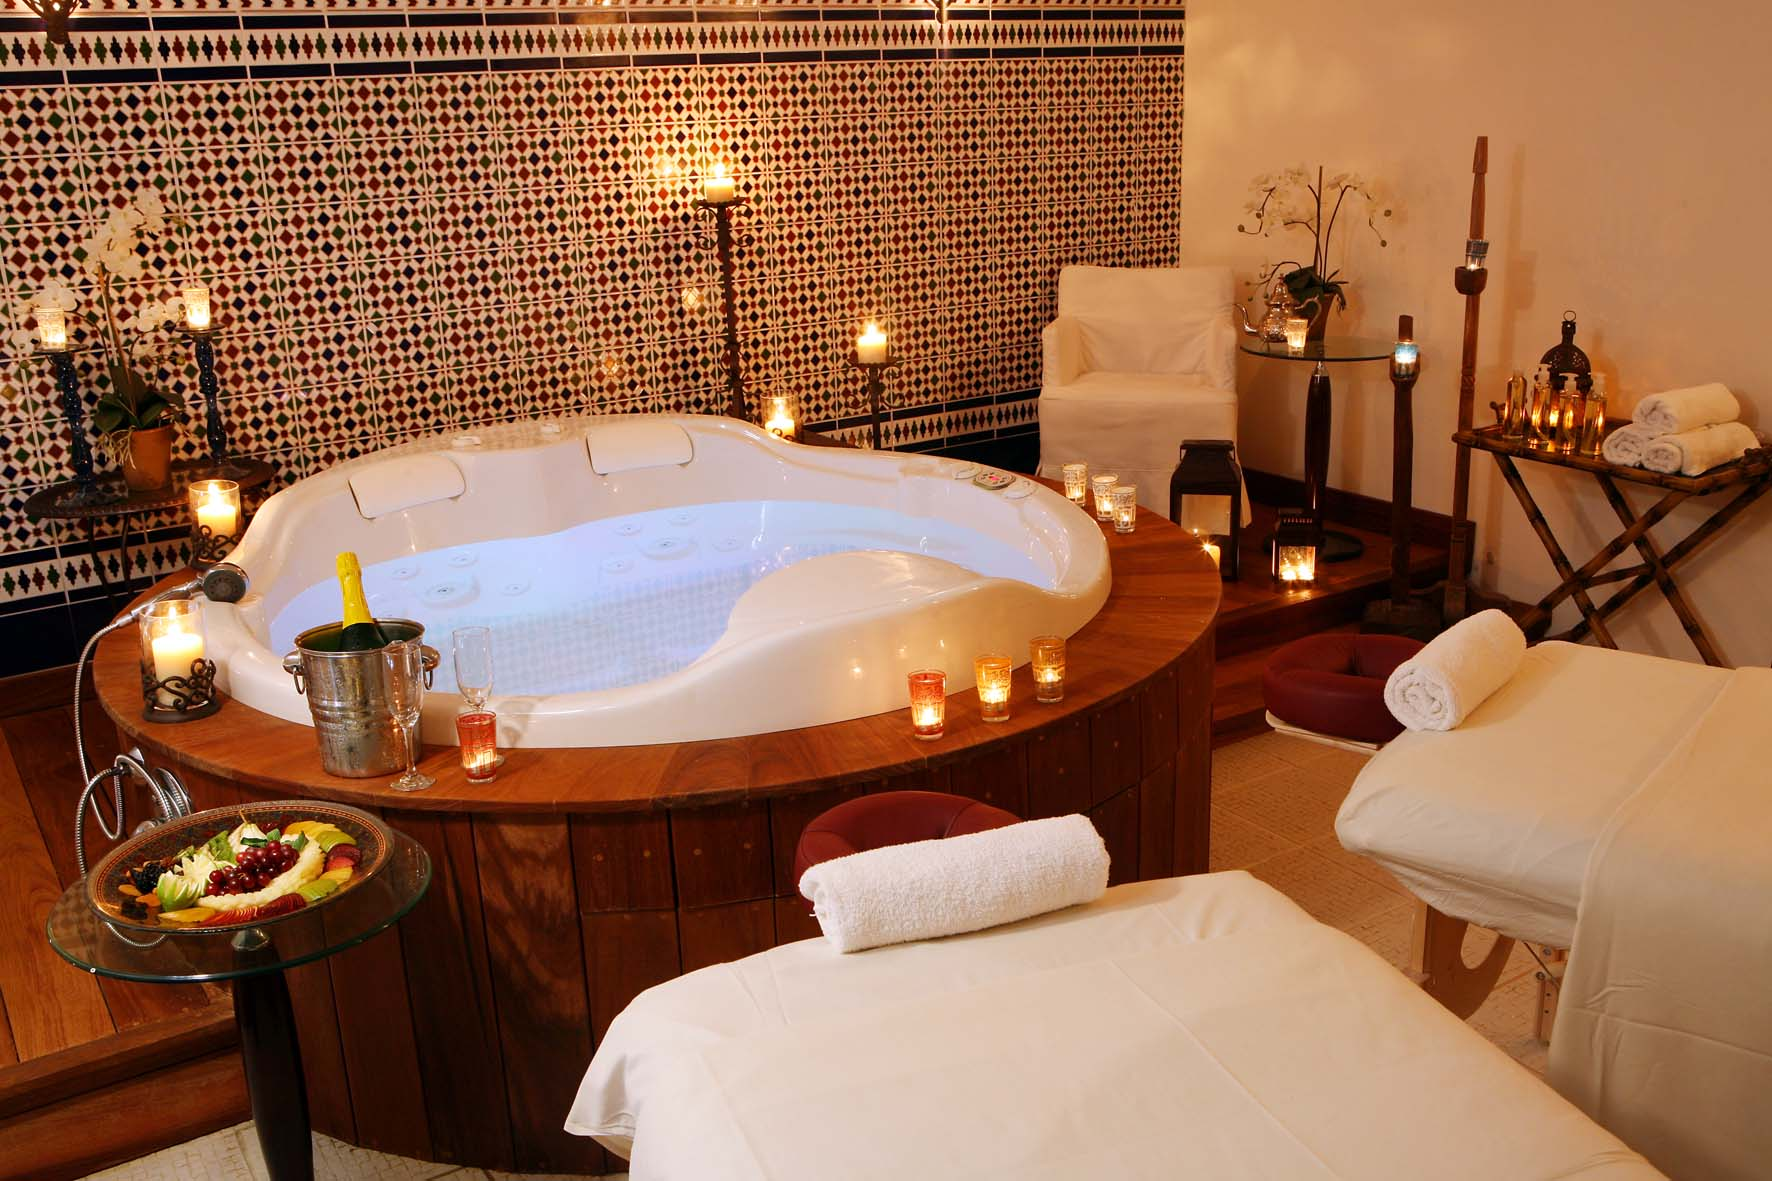 https://www.hotelsbyday.com/_data/default-hotel_image/2/11388/spa-club-vip-spa-suites-with-private-jacuzzi-for-couples-massage.jpg